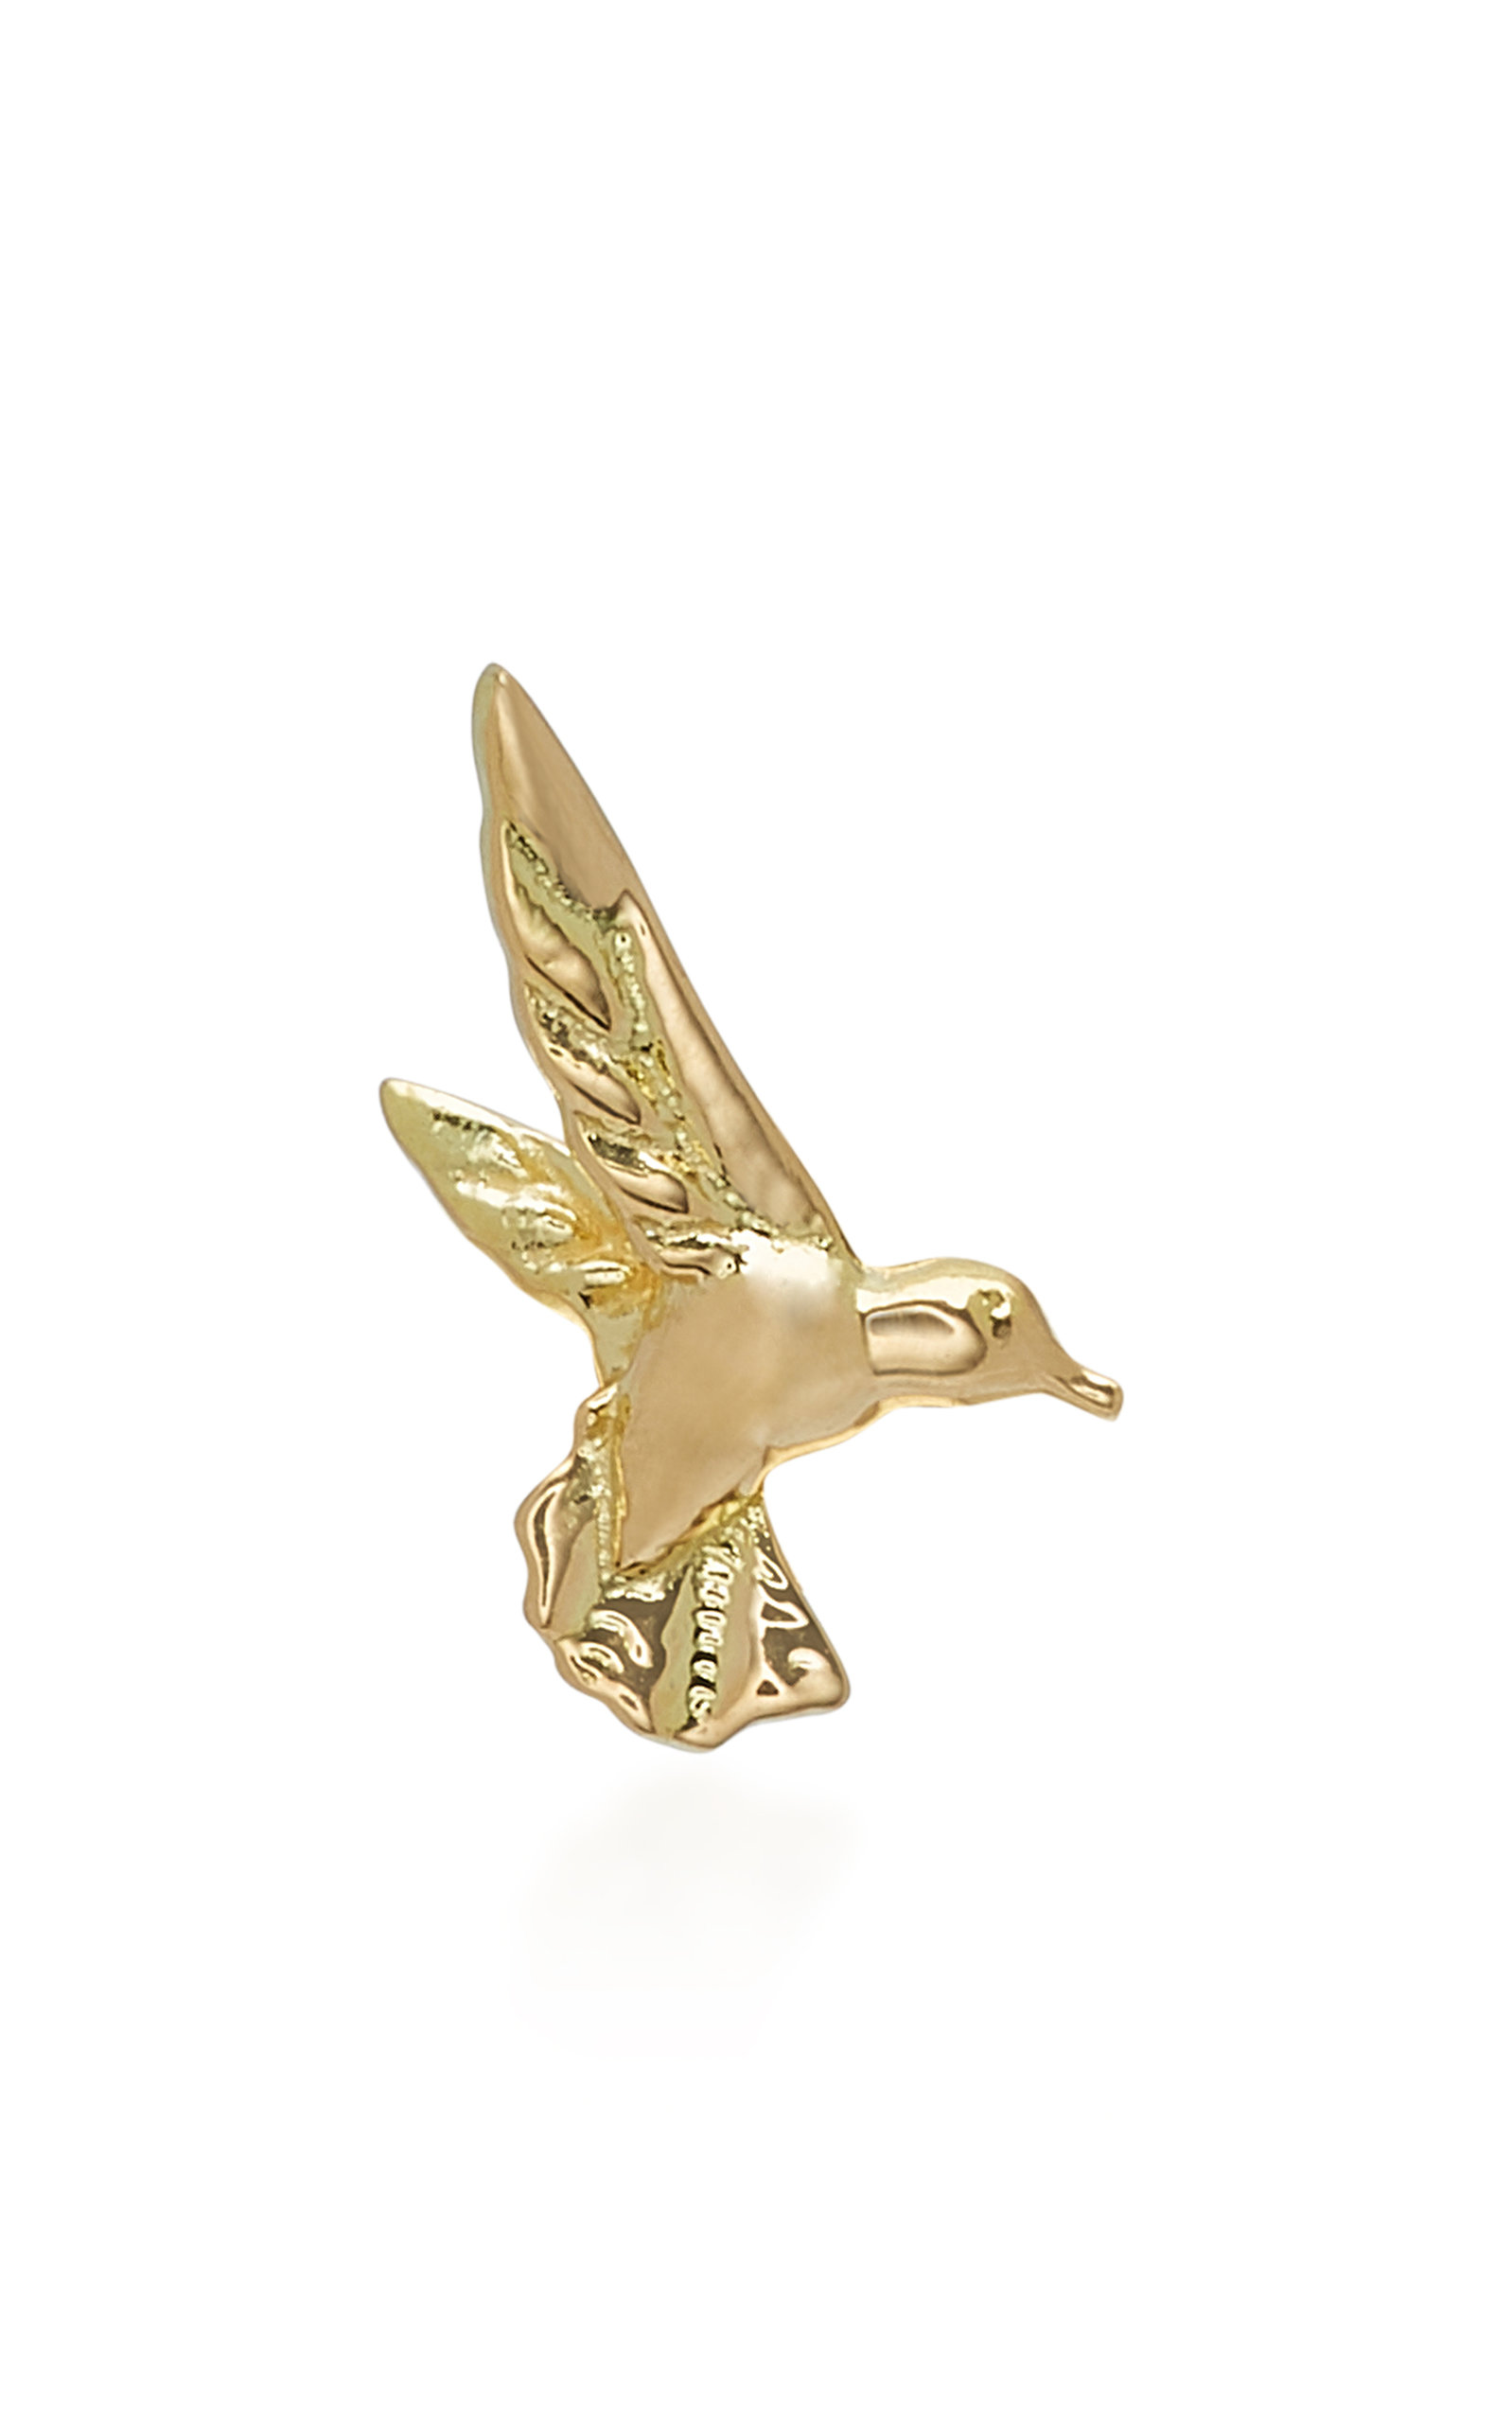 Sale Reliable Collections Hummingbird 18K Gold Diamond Earring Brent Neale Free Shipping Best Place Xx8mH4Wmdl